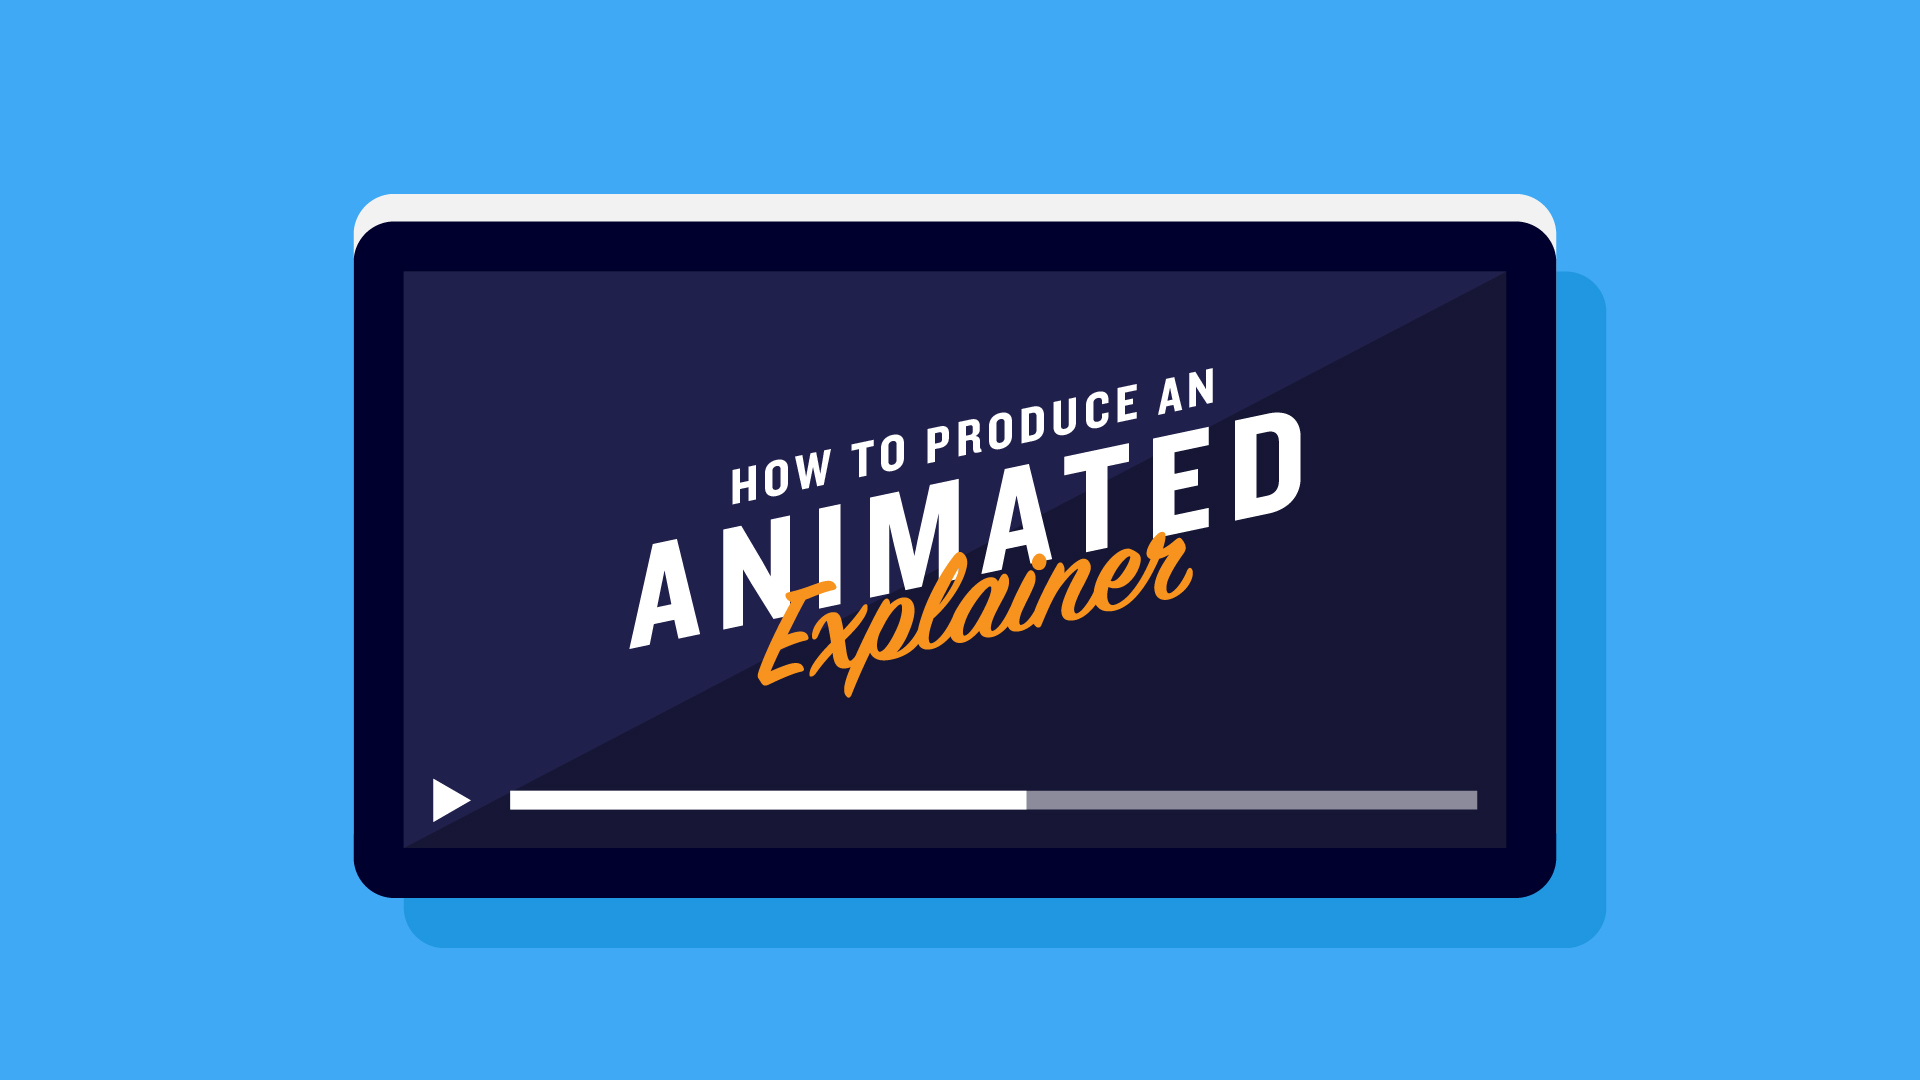 How To Produce an Animated Explainer Video for Your Business (Part 1 - Where To Start)